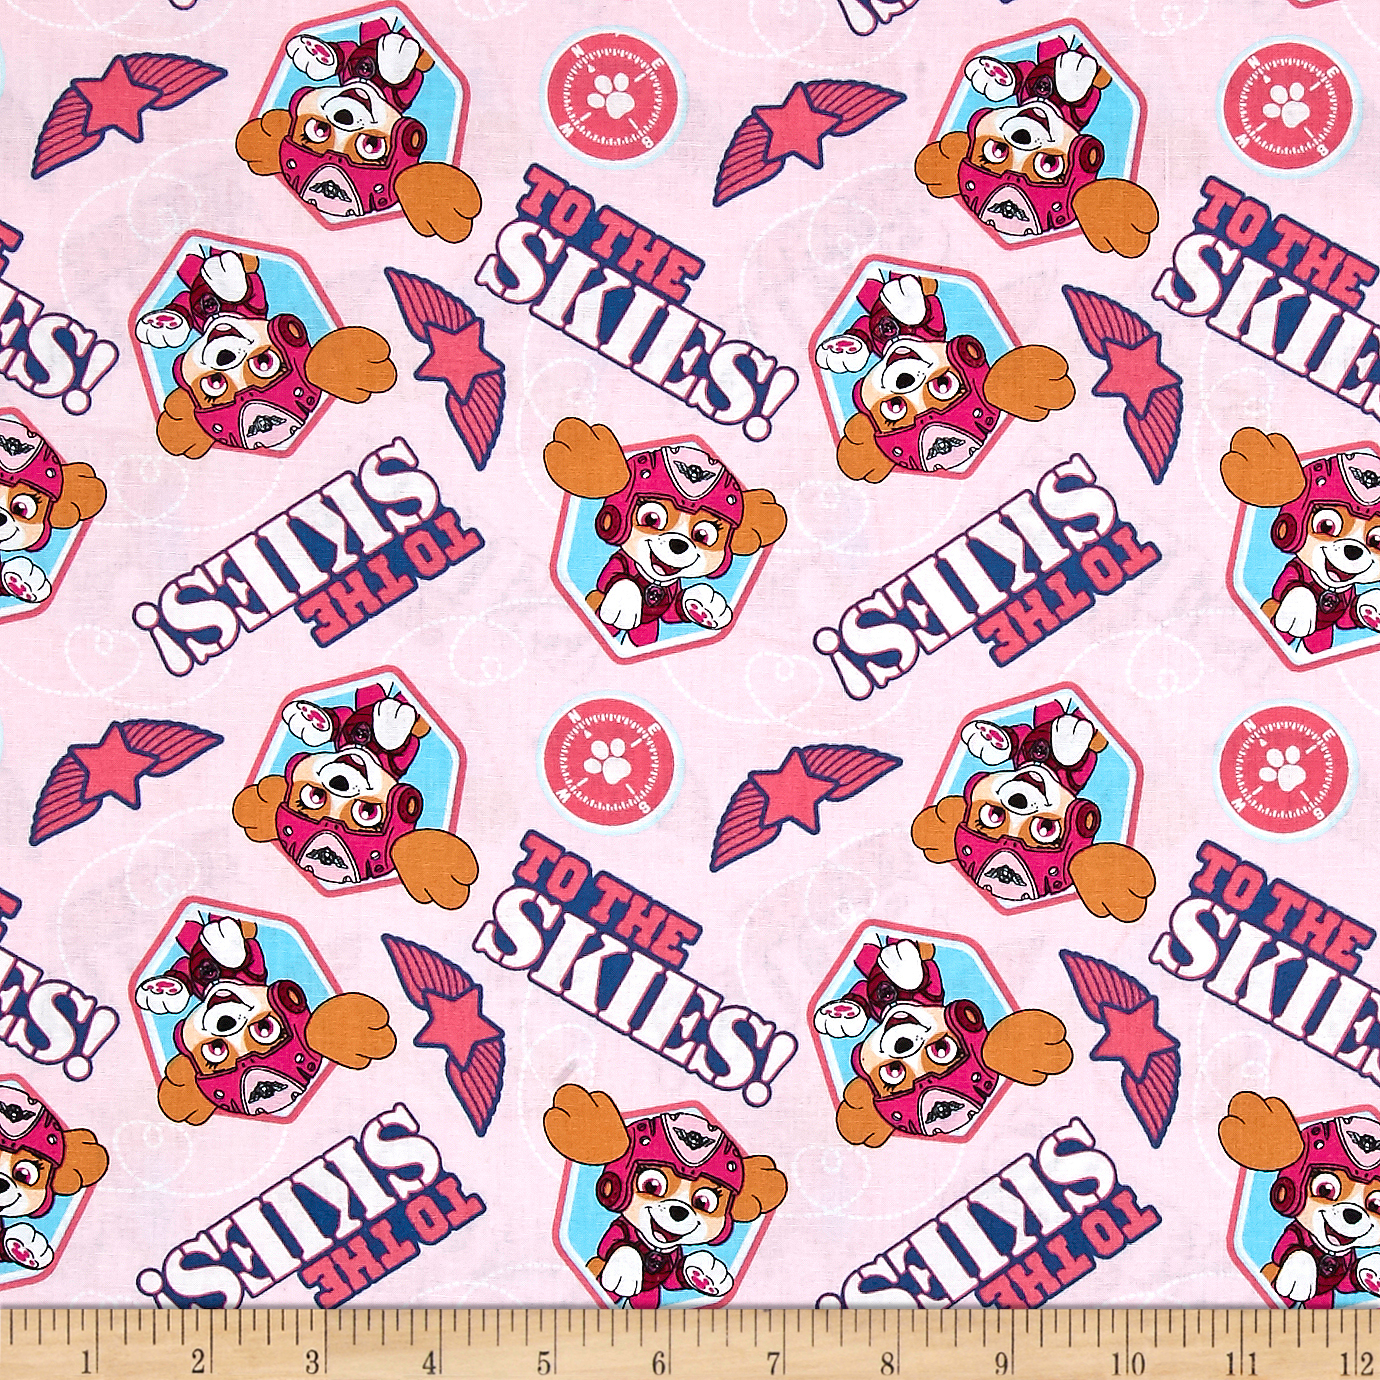 Nickelodeon Paw Patrol Pup To The Skies Pink Fabric